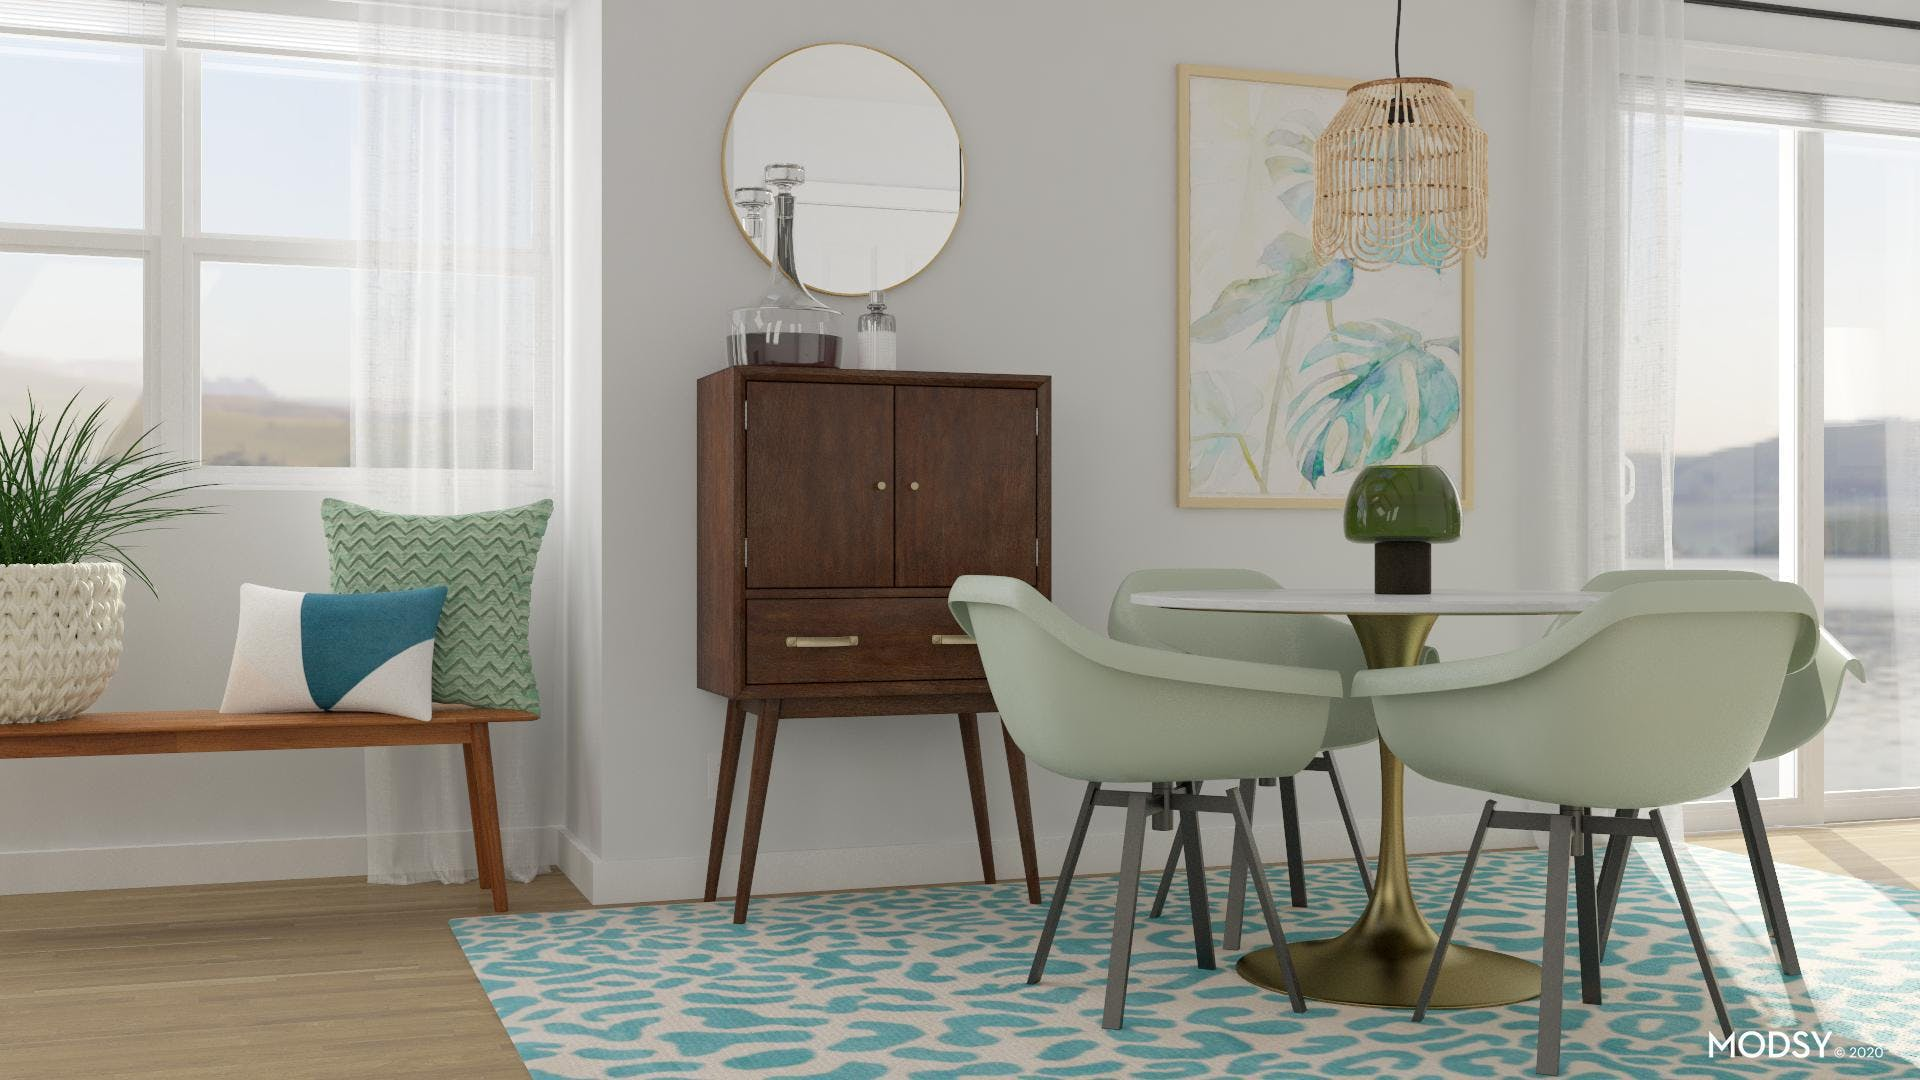 A Chic Mid-Century Modern Dining Room